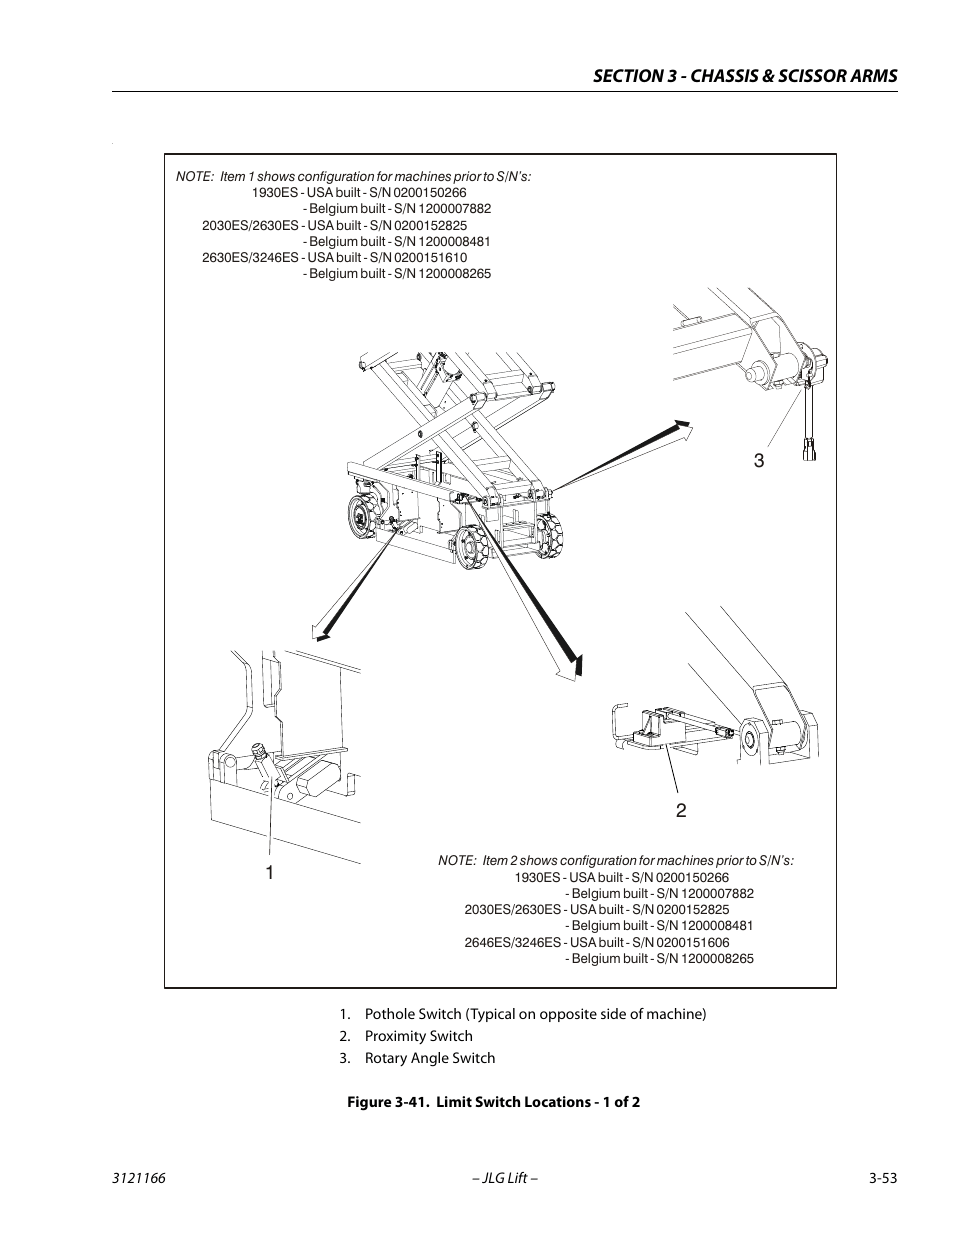 hight resolution of limit switch locations 1 of 2 53 jlg 3246es service manual user manual page 89 222